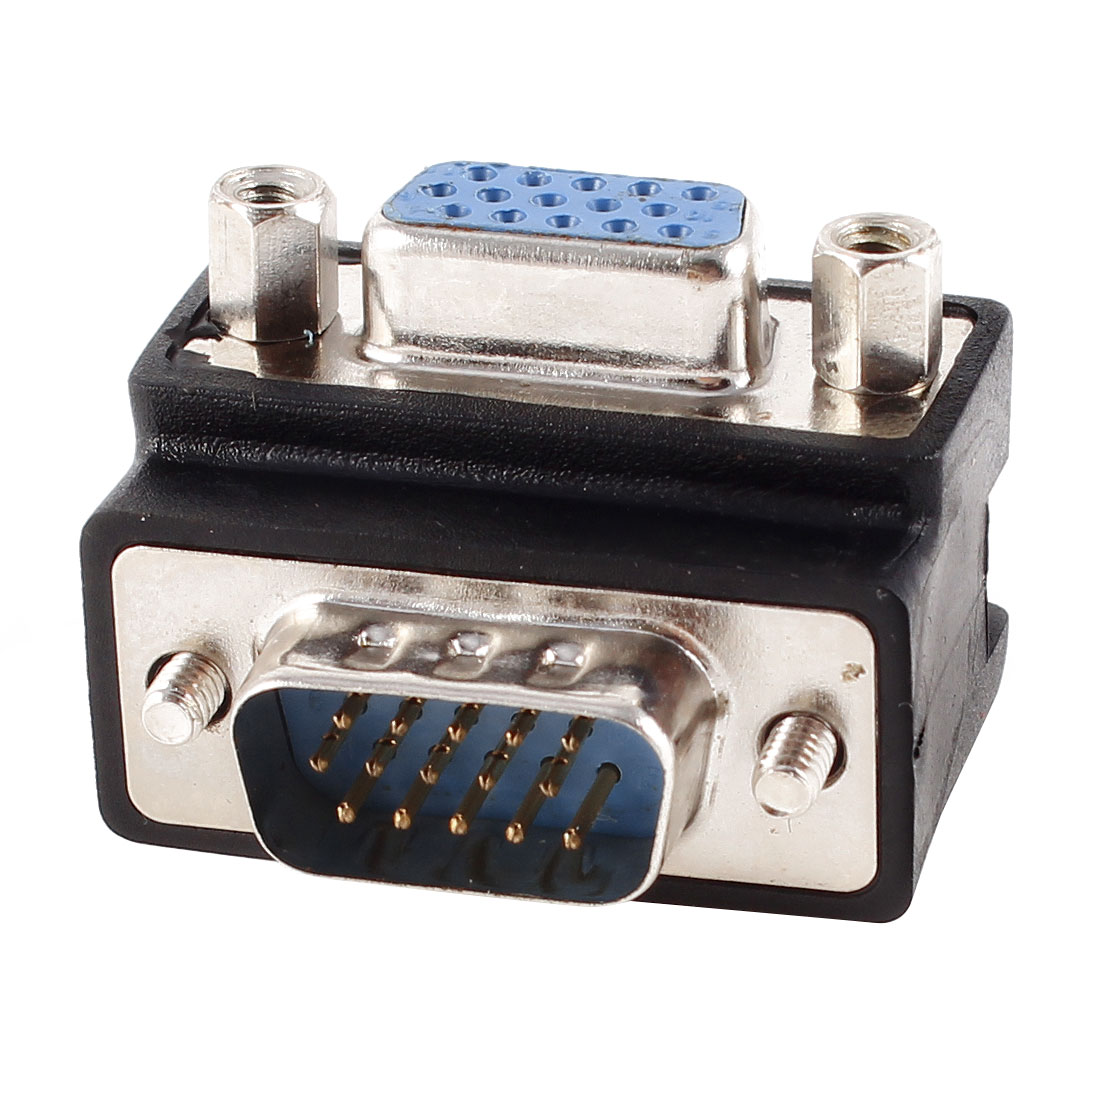 VGA SVGA Male to Female Right Angle Adapter Port for 15 Pin TV Cable